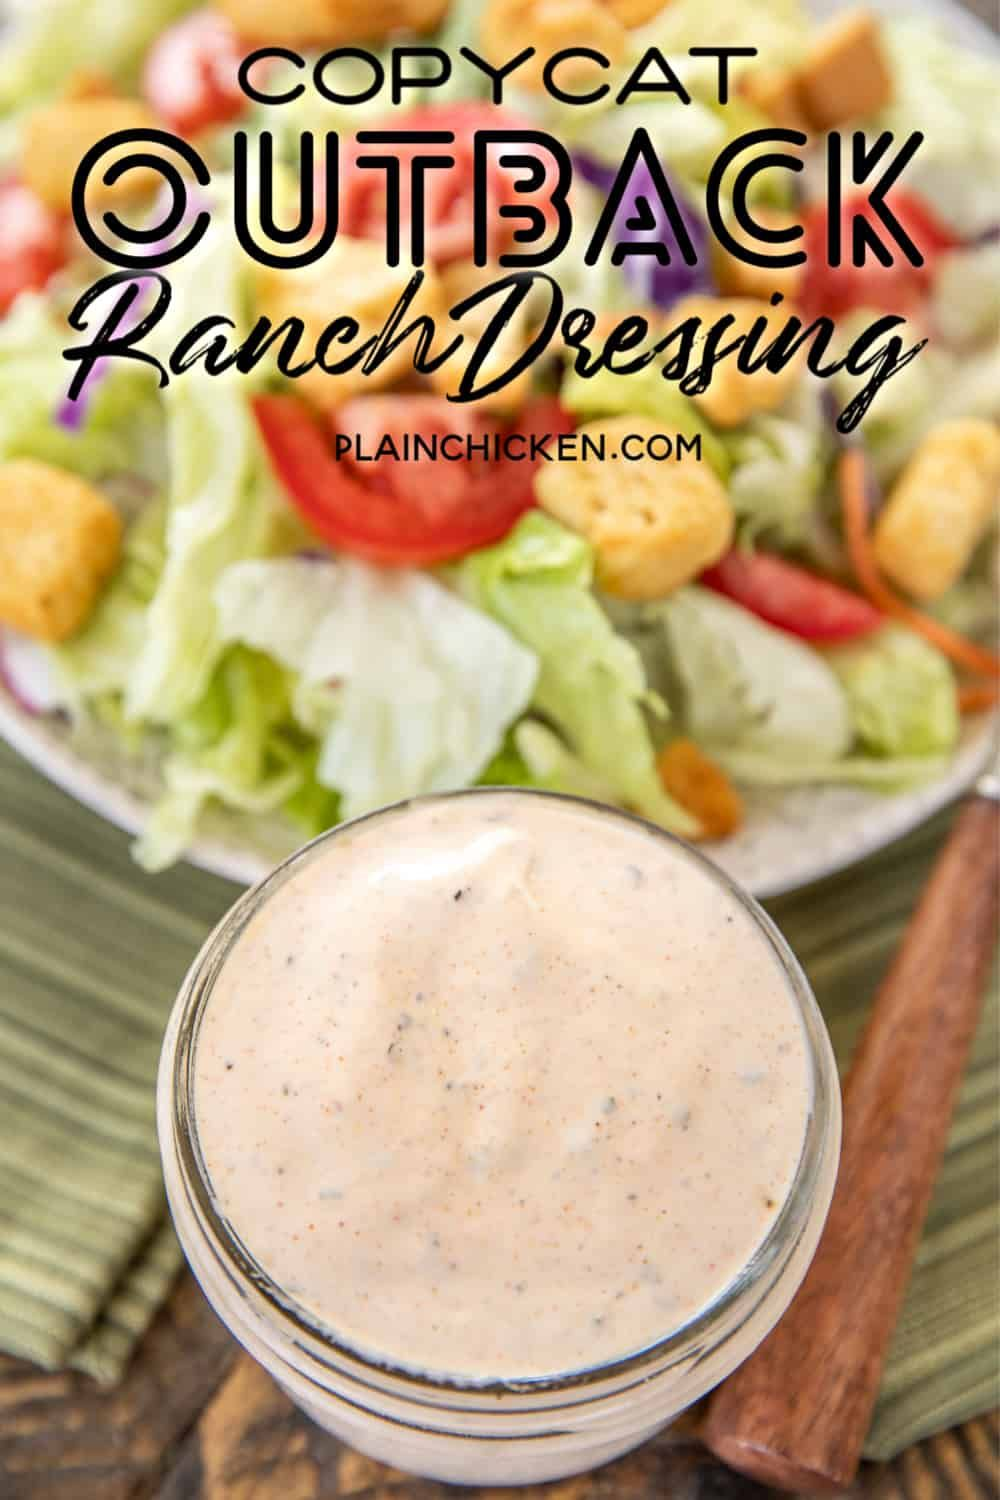 Copycat Outback Ranch Dressing Seriously The Best Ranch Dressing I 039 Ve Ever Eaten In 2020 Salad Dressing Recipes Homemade Ranch Dressing Recipe Homemade Salads